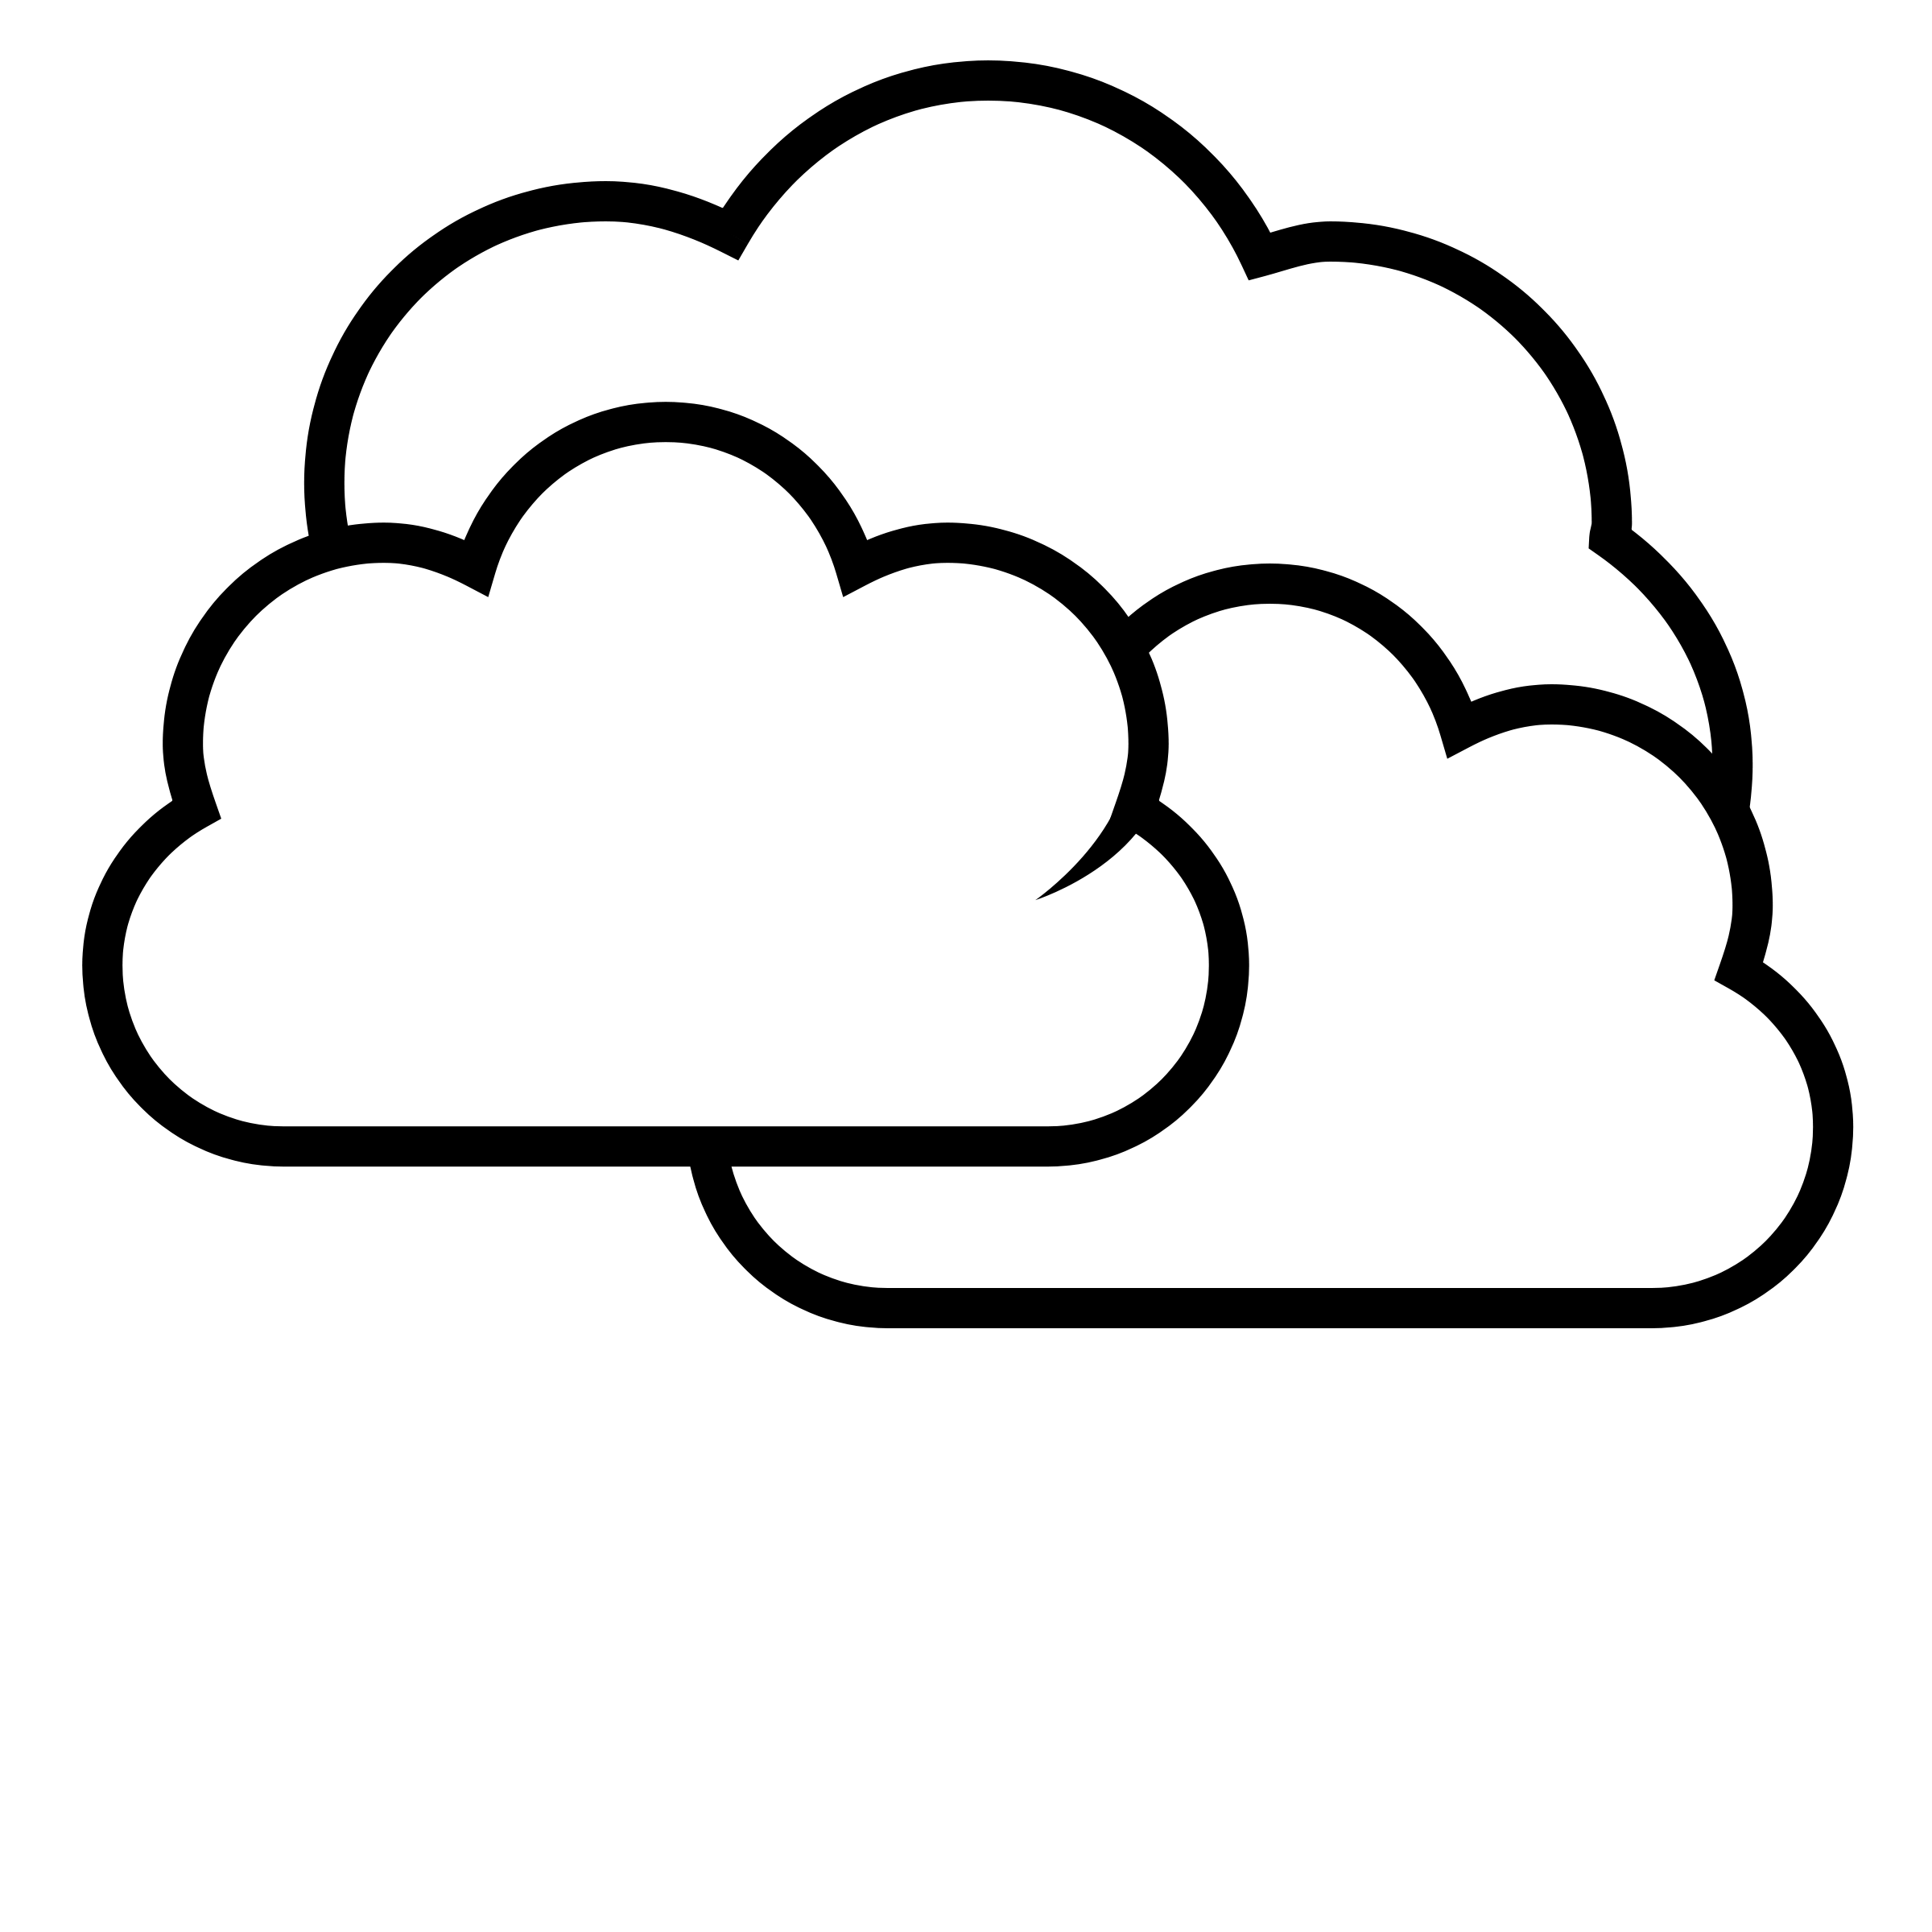 Partly Cloudy Clipart Black And White Cloudy Clipart Black And White